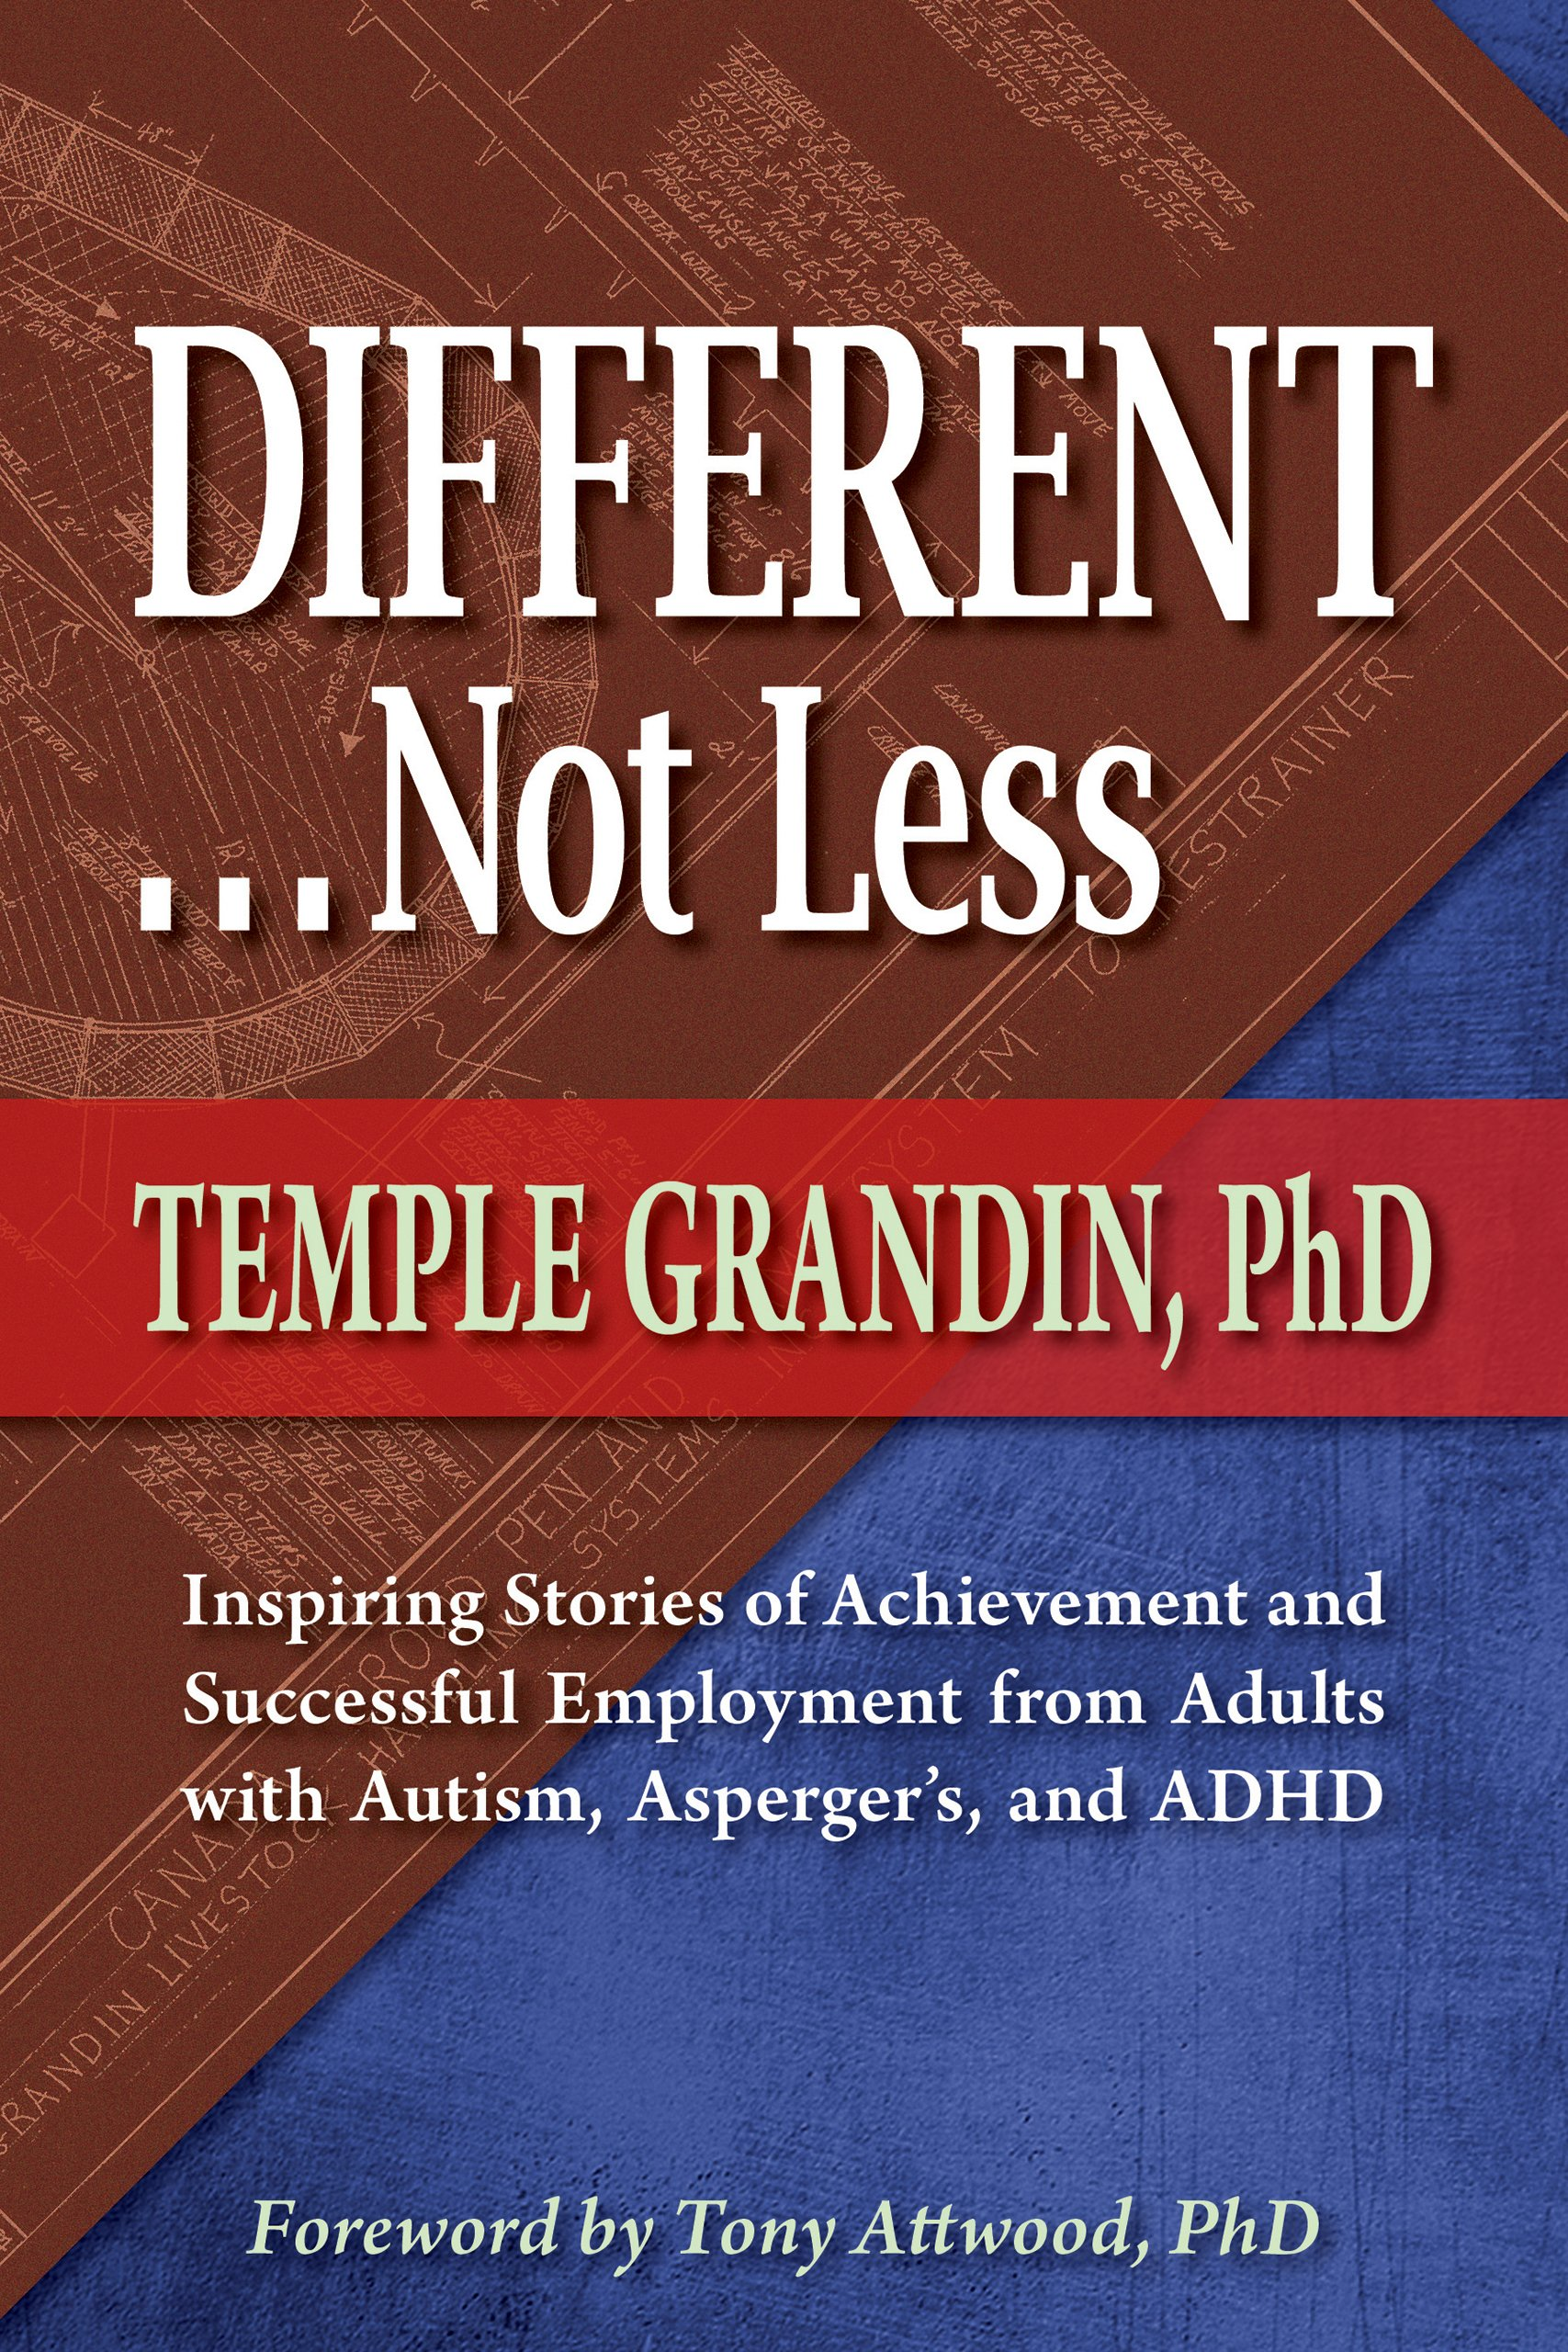 Different Not Less Inspiring Stories Of Achievement And Successful Employment From Adults With Autism Aspergers ADHD Temple Grandin